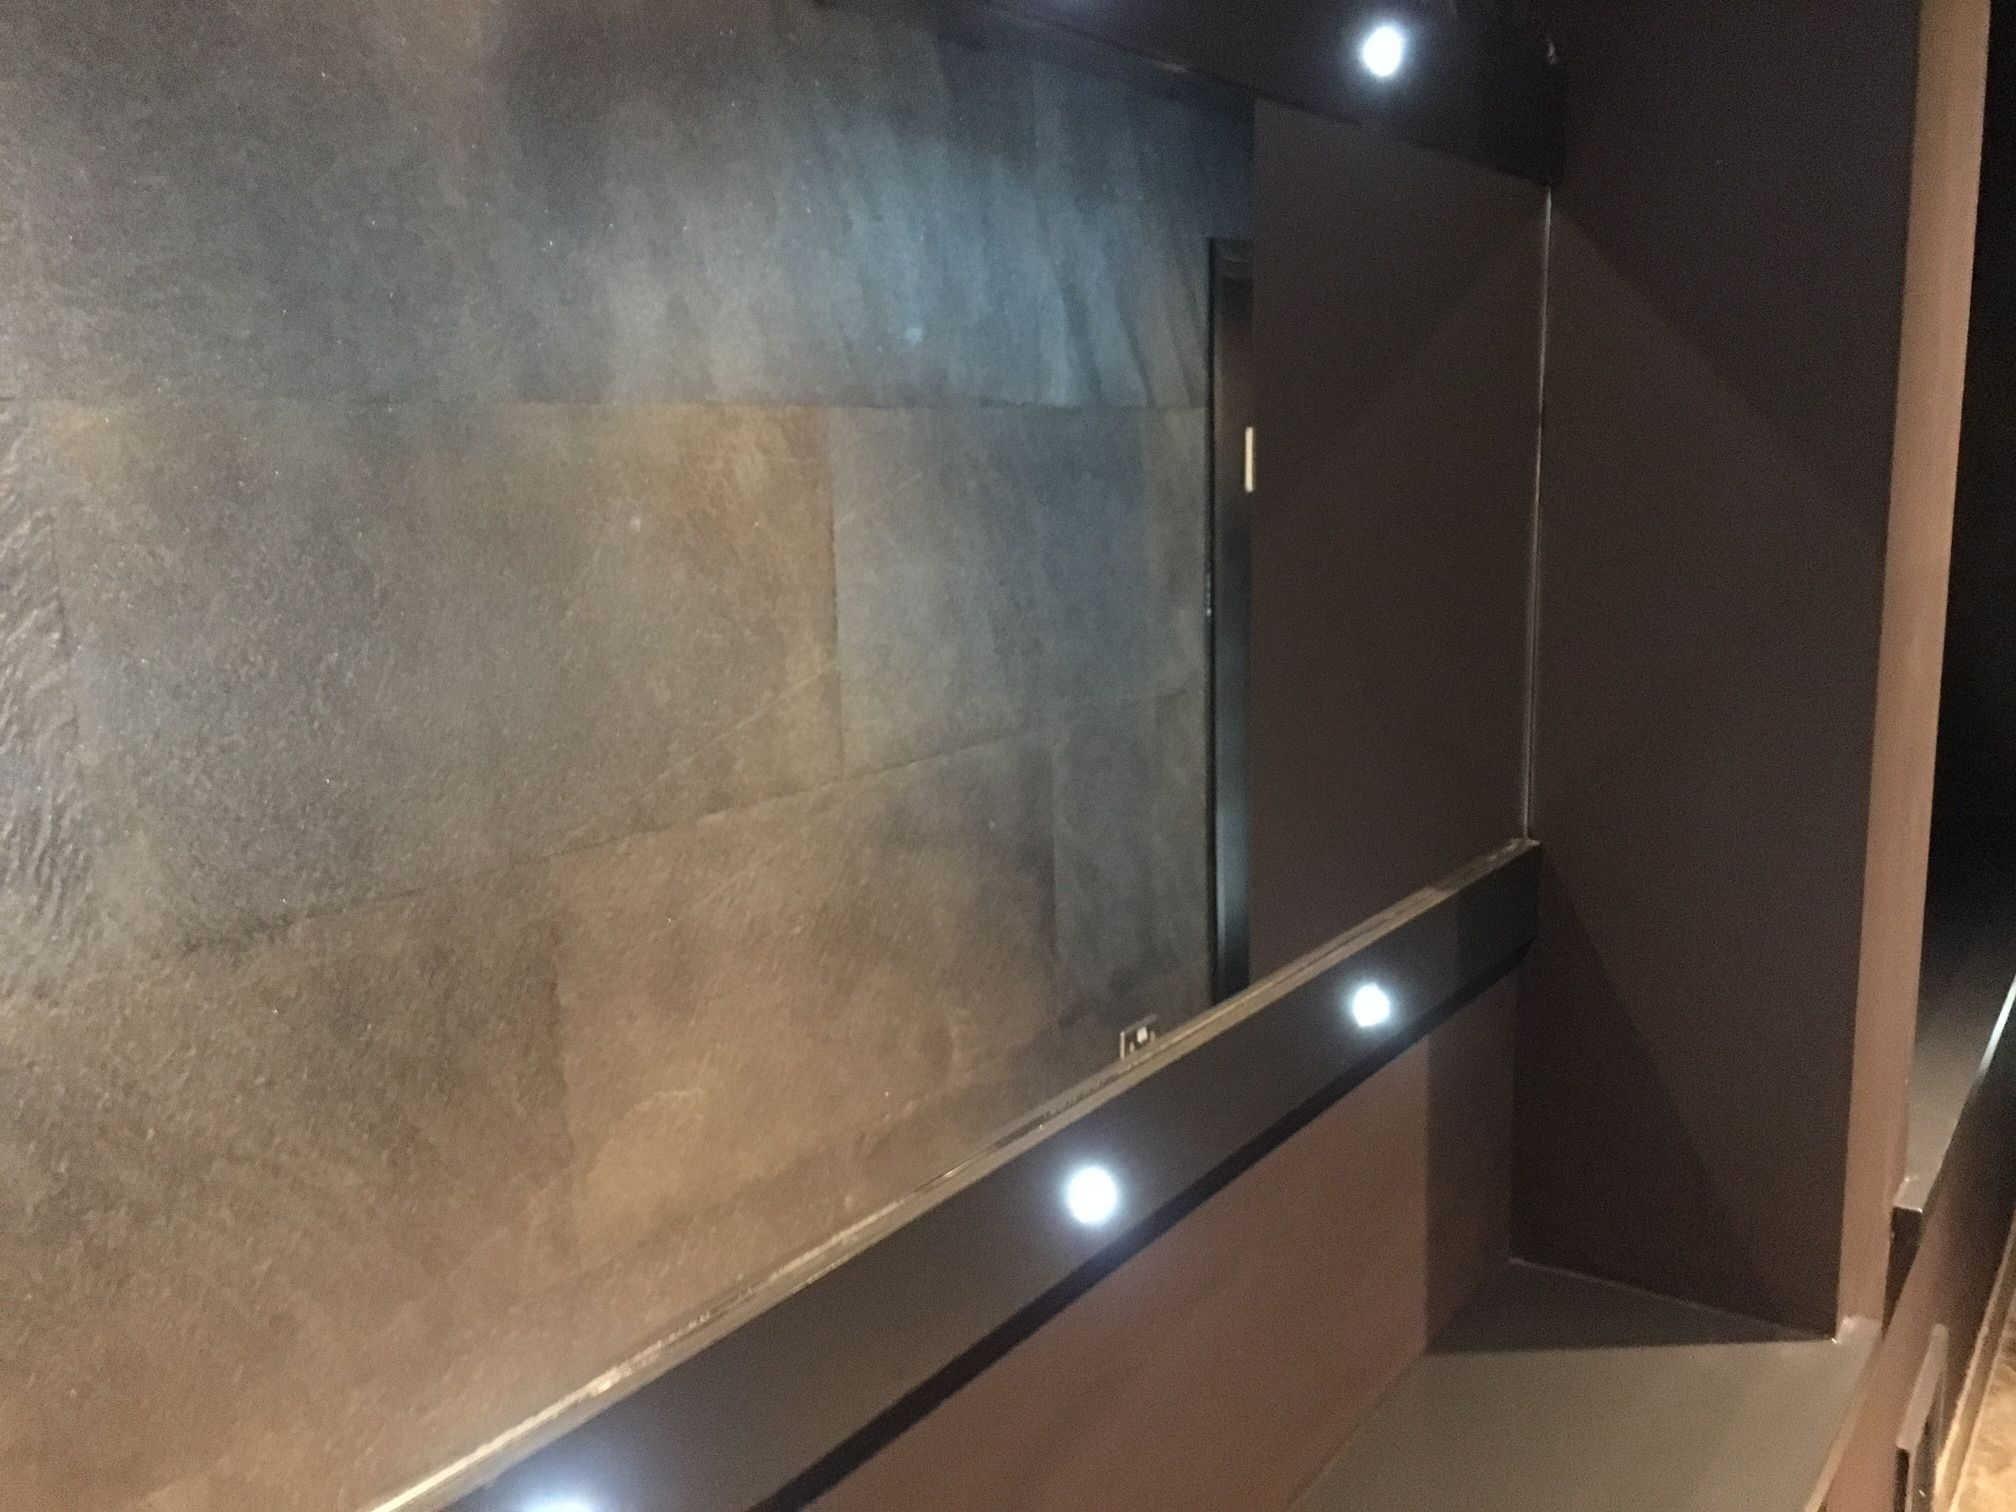 Galaxy black slate veneer wall cladding livingroom pinterest slate veneer tiles and natural stone cladding light weight ultra thin flexible and natural stone finish cladding for all interior and exterior uses doublecrazyfo Choice Image